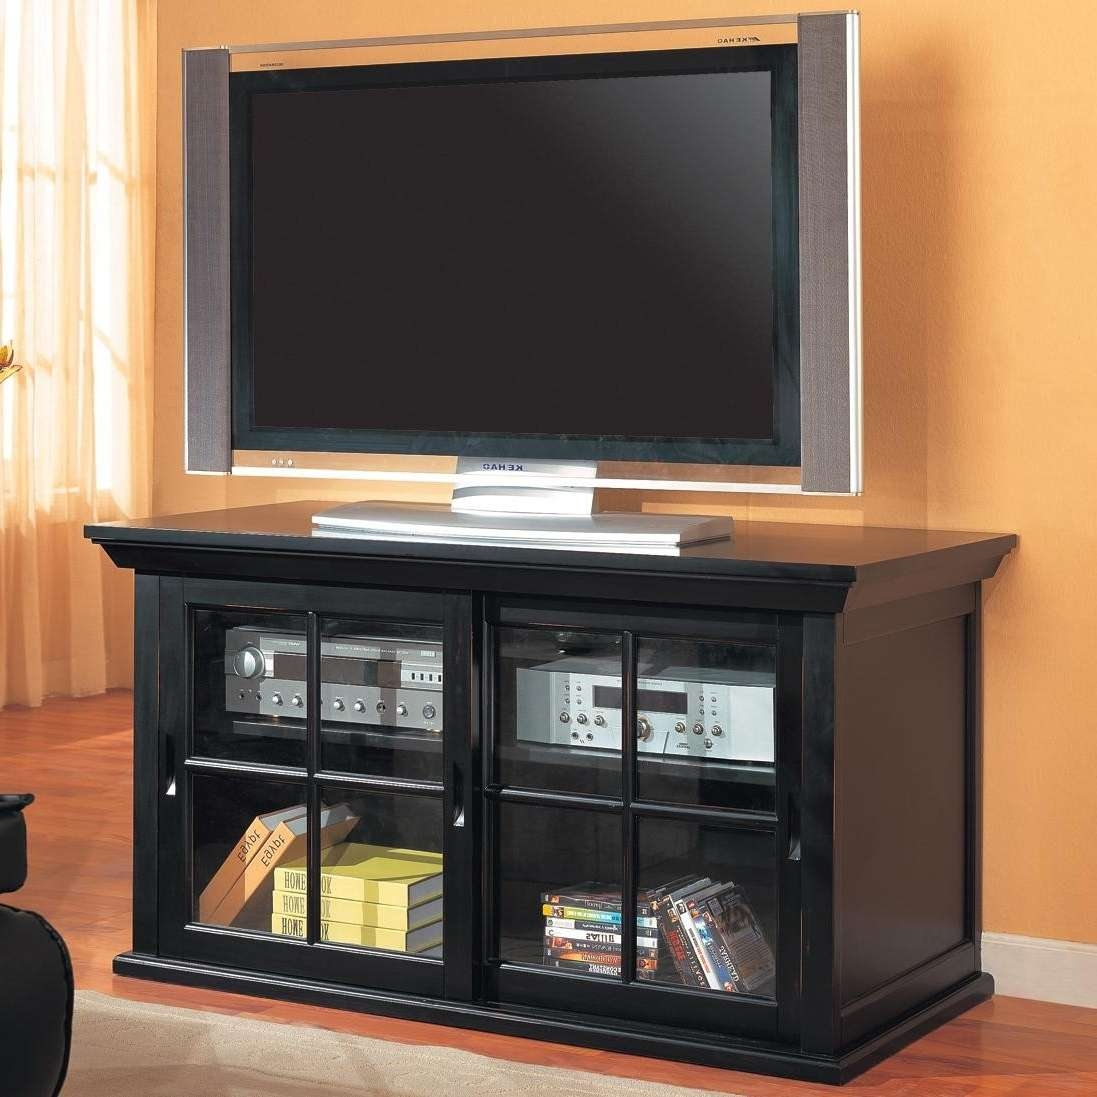 Small Tv Cabinets With Glass Doors • Cabinet Doors Inside Tv Cabinets With Glass Doors (View 10 of 20)